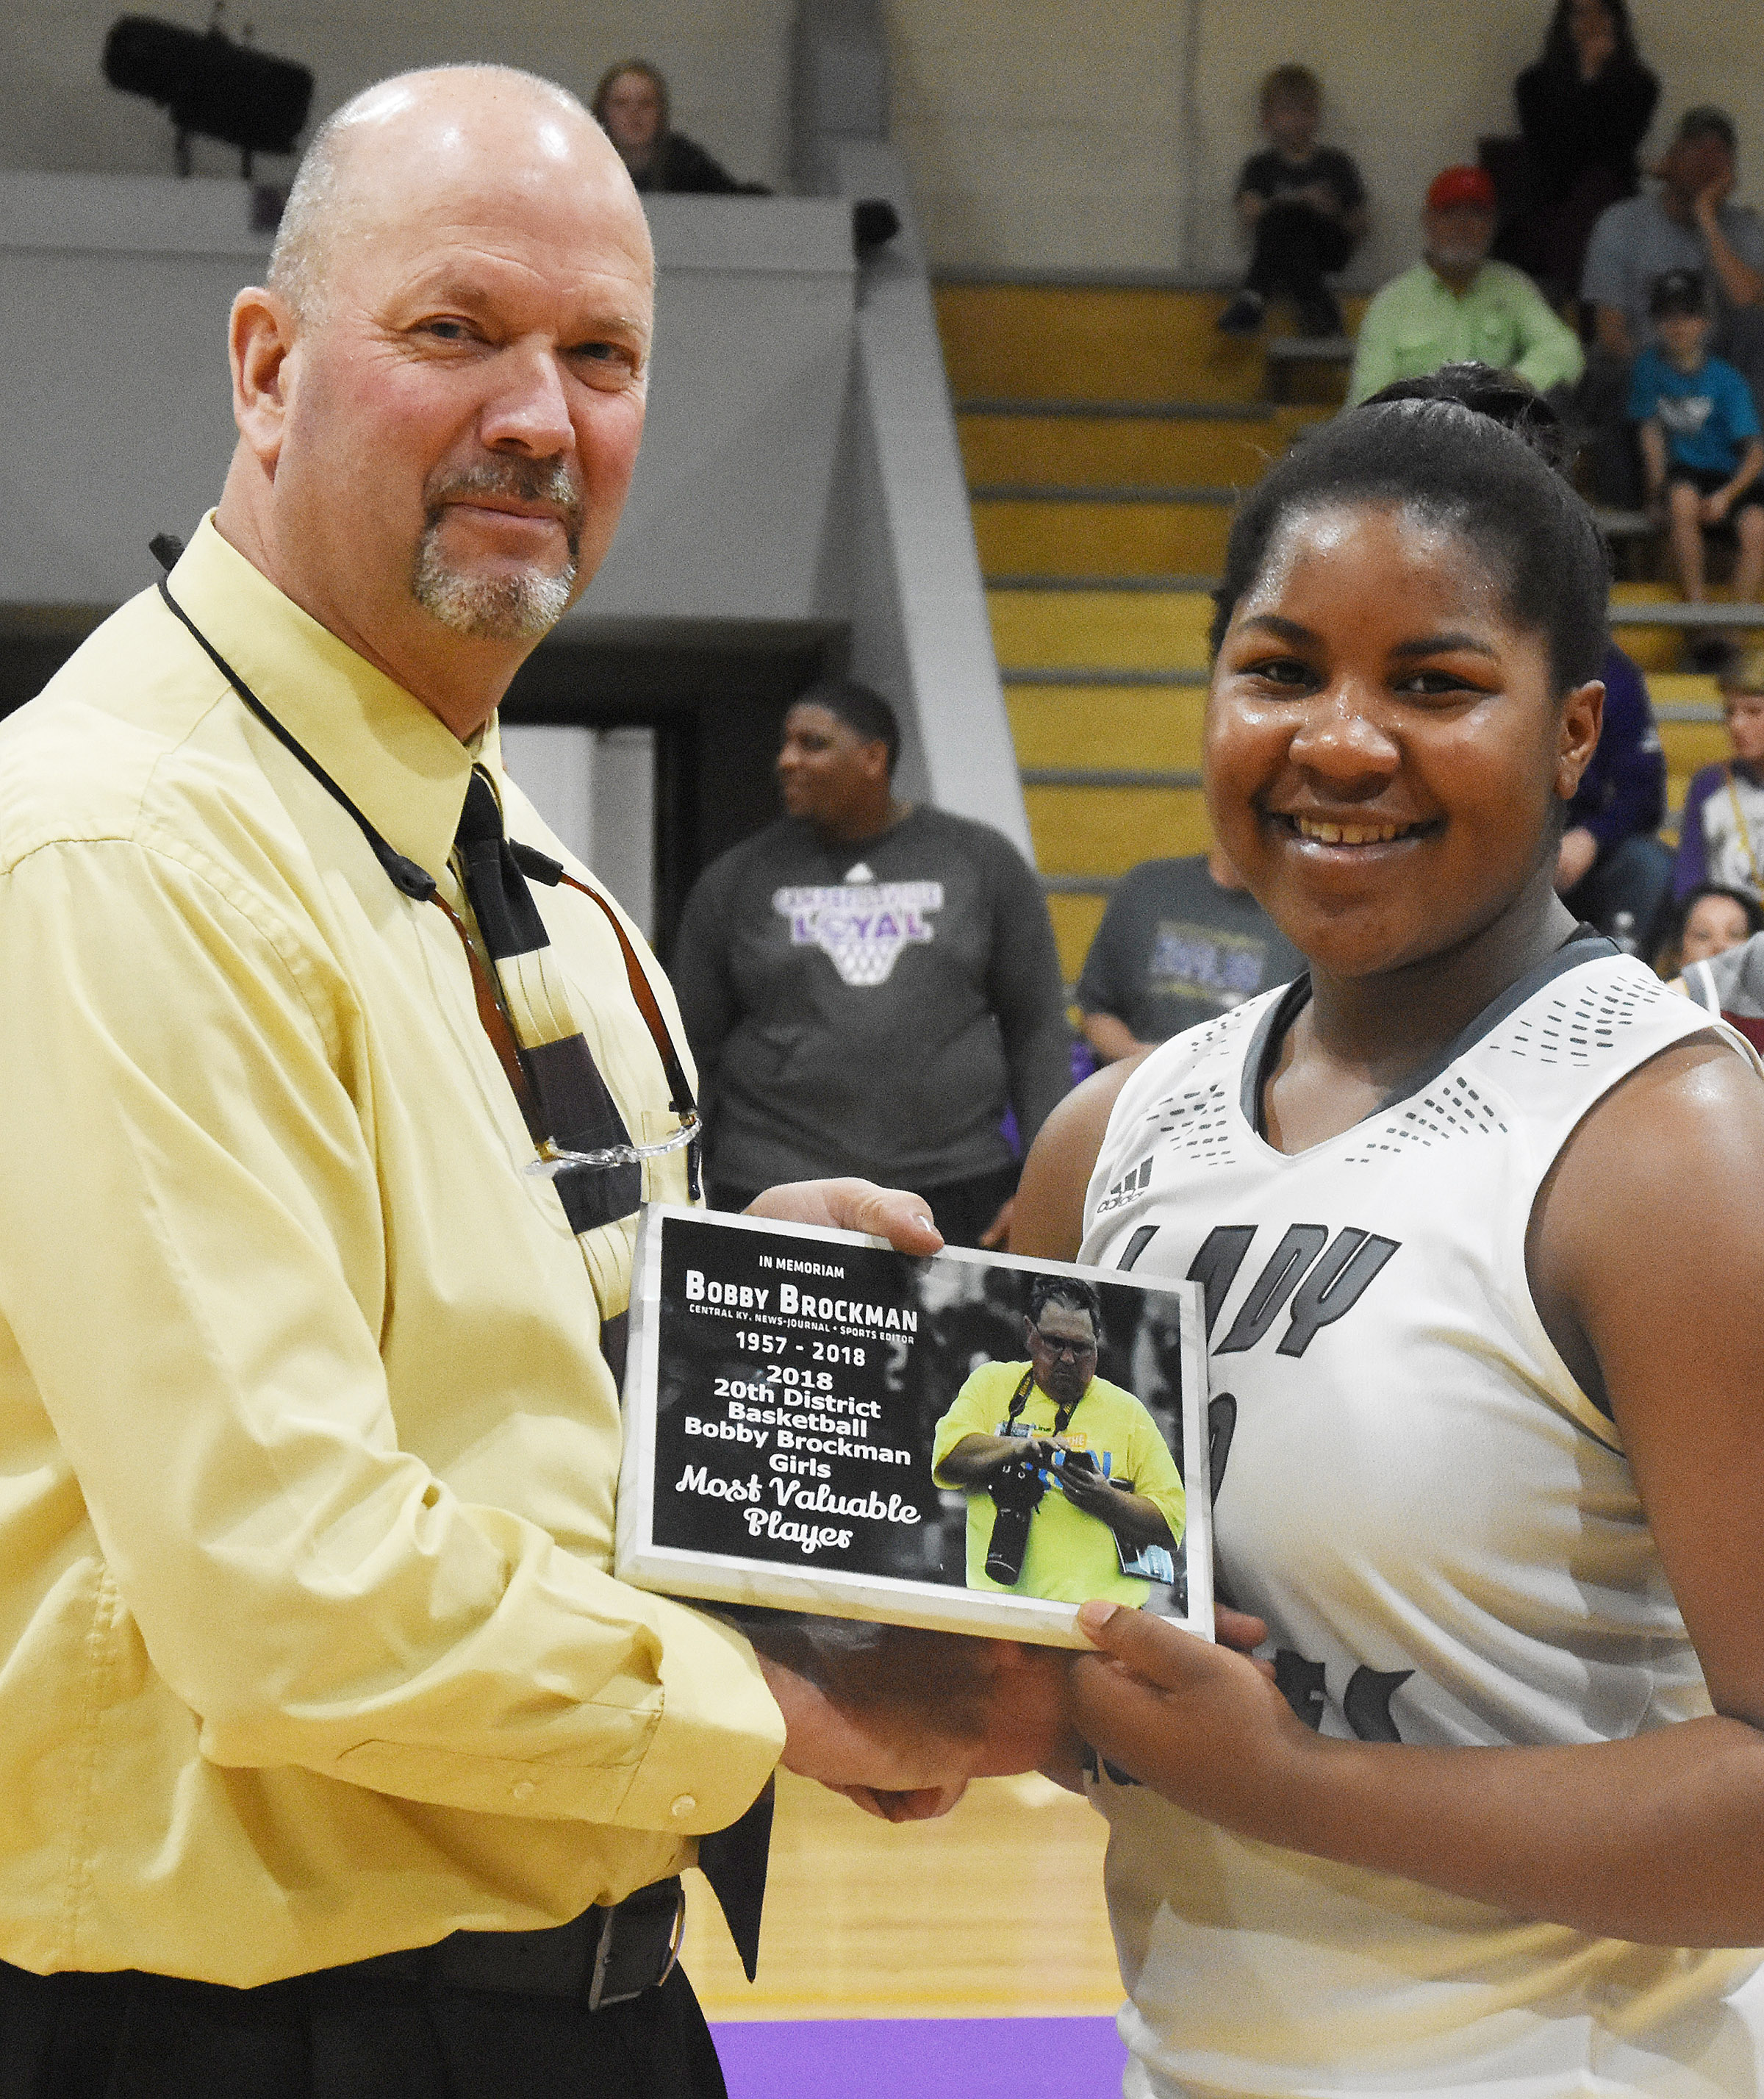 CHS senior Nena Barnett is presented the Bobby Brockman Most Valuable Player award by CHS Athletic Director Tim Davis.